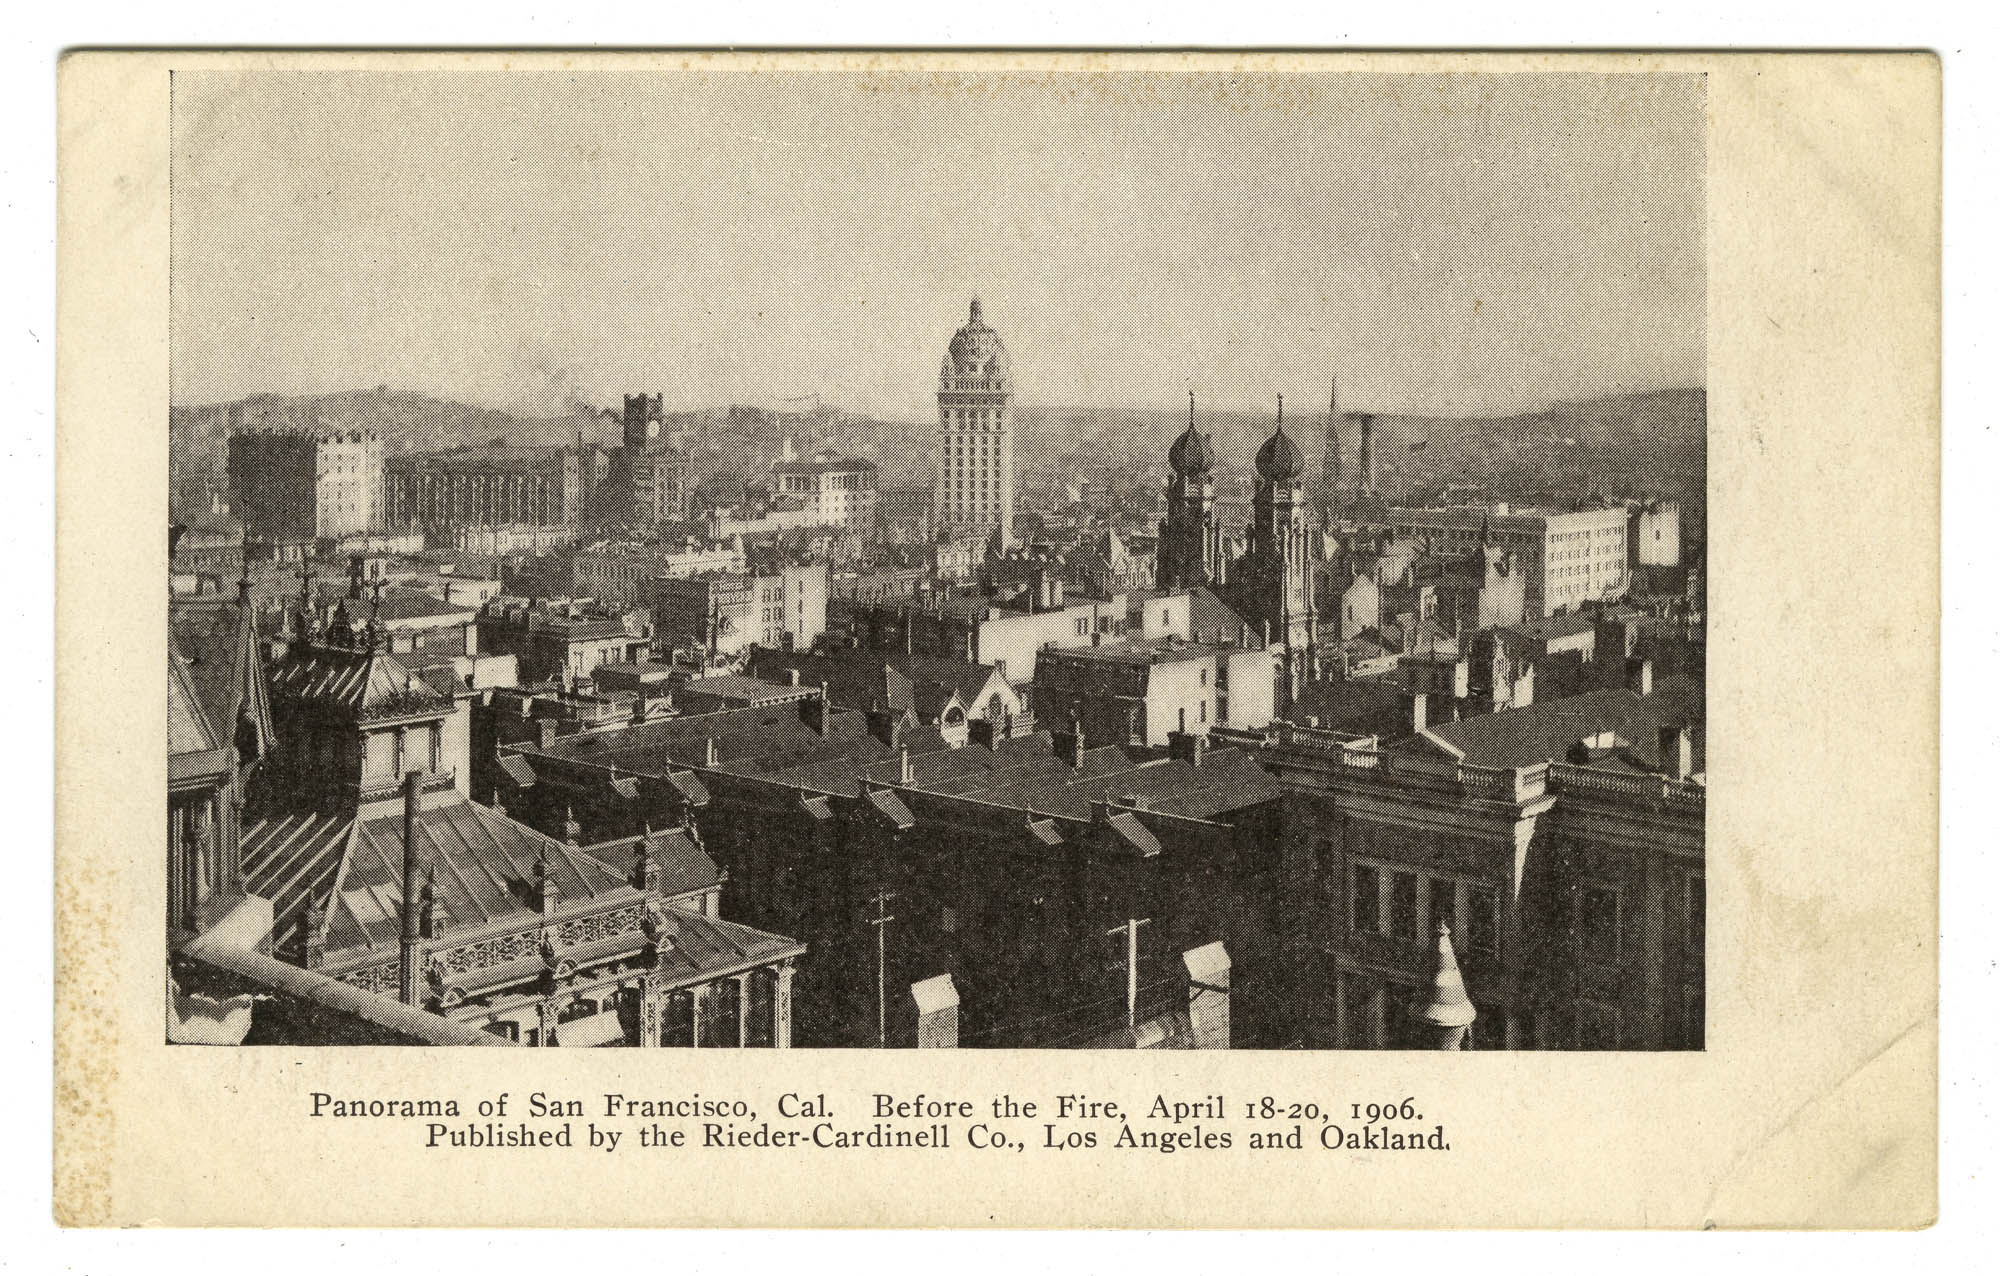 Panorama of San Francisco, Cal. Before the Fire, April 18-20, 1906.